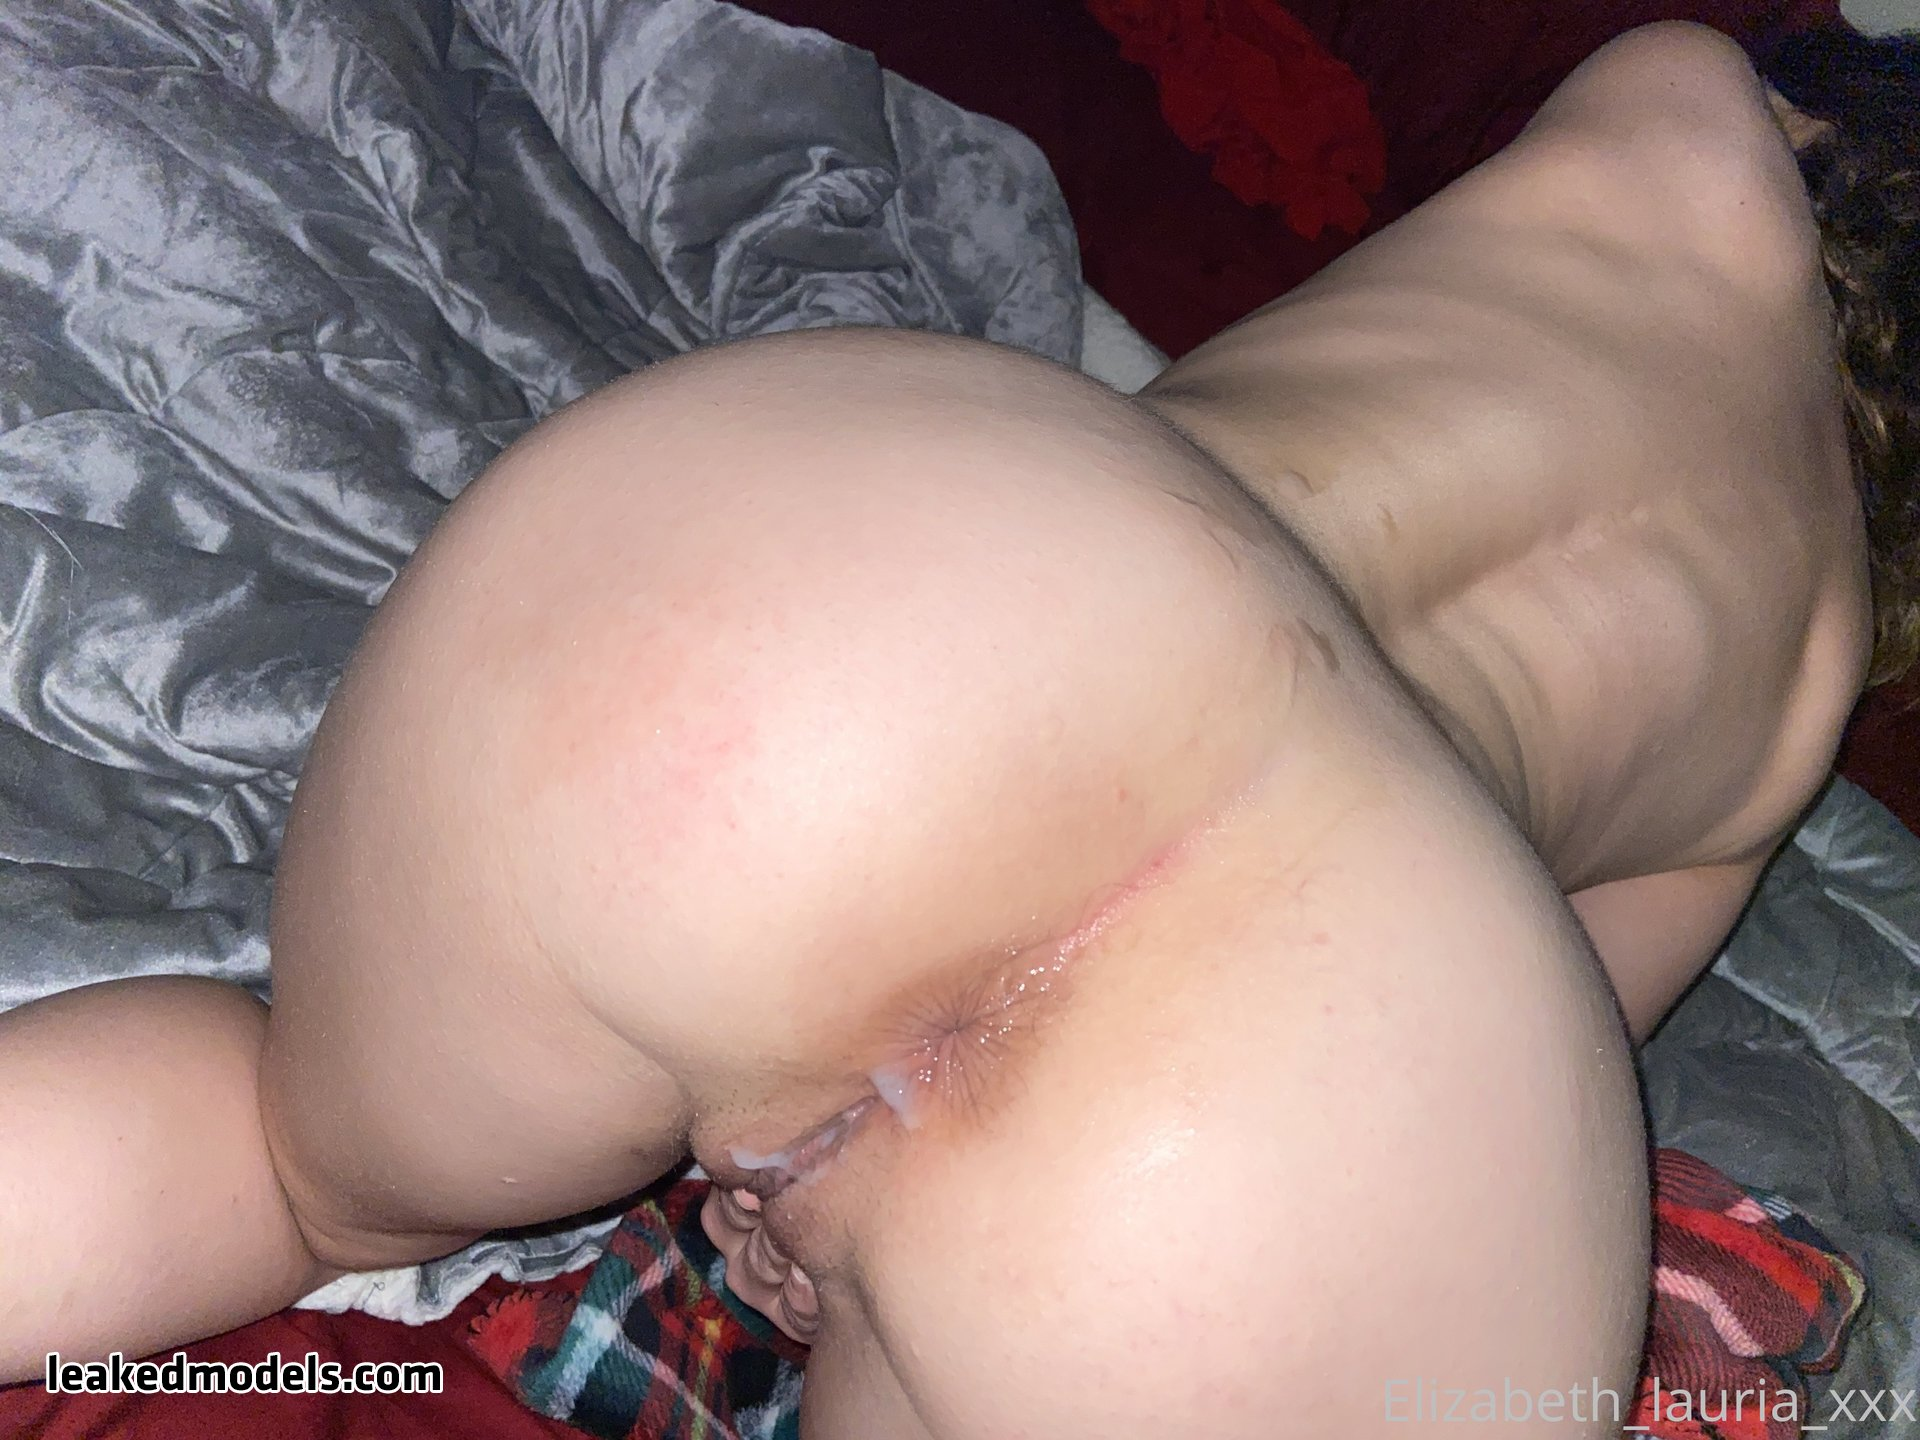 Ruby – ruby_elizzzabeth OnlyFans Nude Leaks (27 Photos)